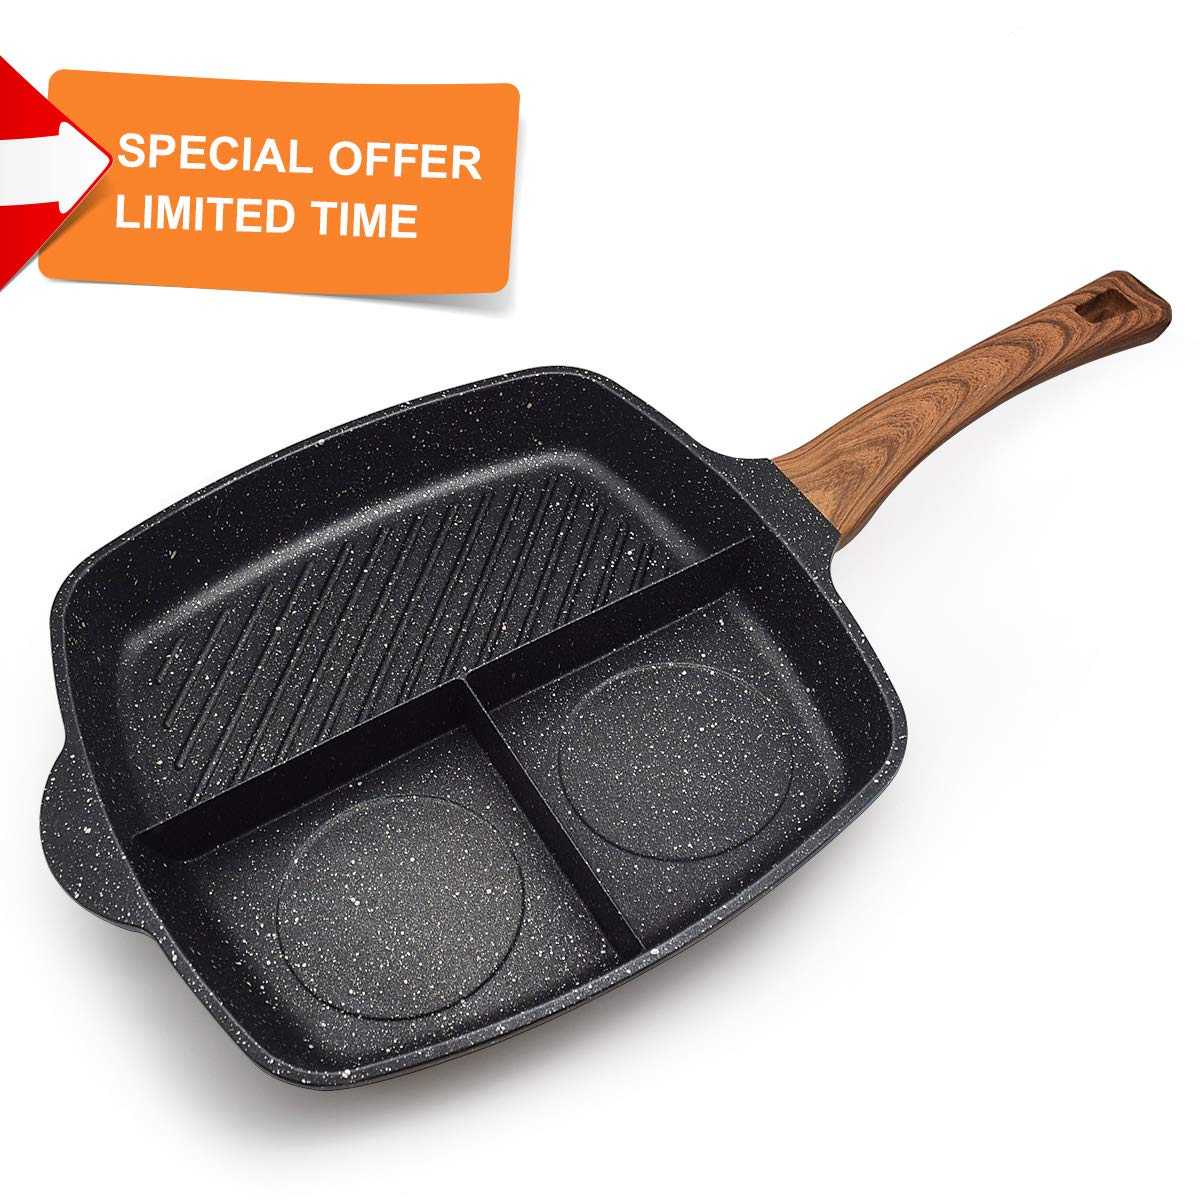 FRUITEAM Meal Skillet 3-in-1 Breakfast Pan Divided Skillet Grill Pan Stone & Ceramic Nonstic Frying Pan, 3 Section Divided Pan, Induction Fry Pan, 1 Year Warranty